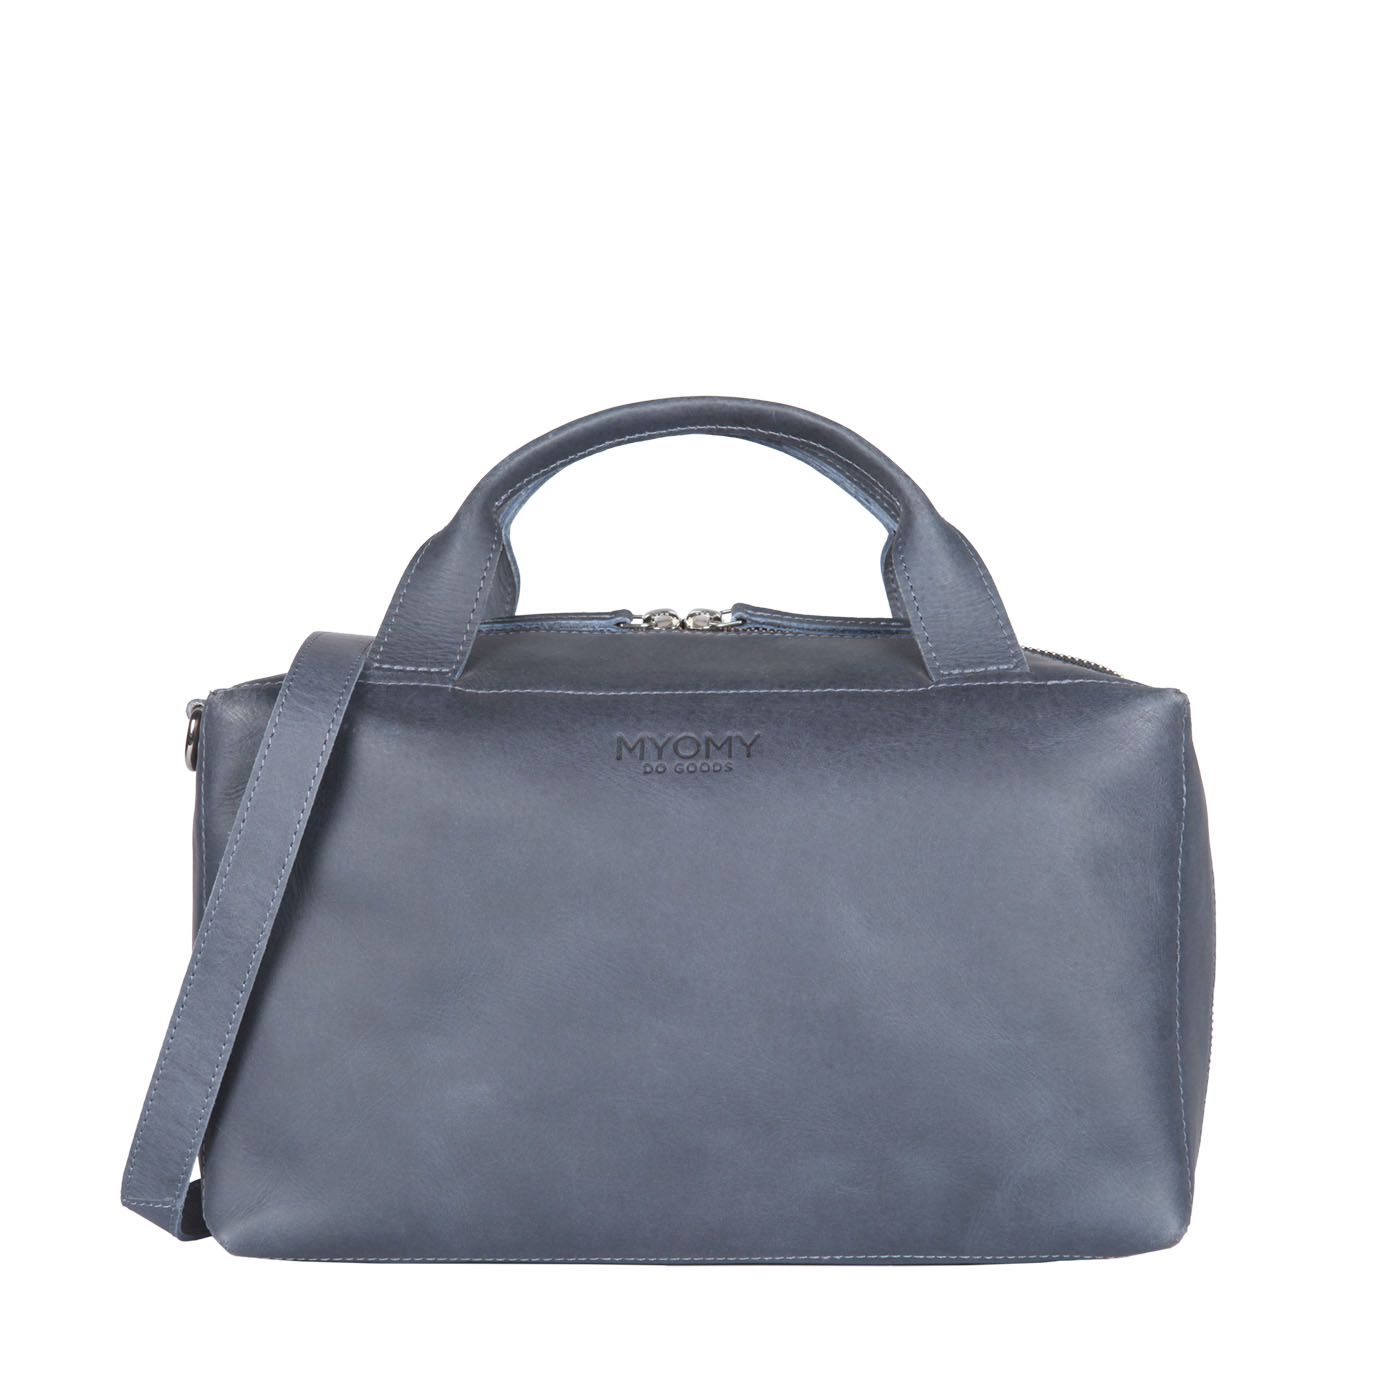 MY BOXY BAG Workbag – hunter navy blue